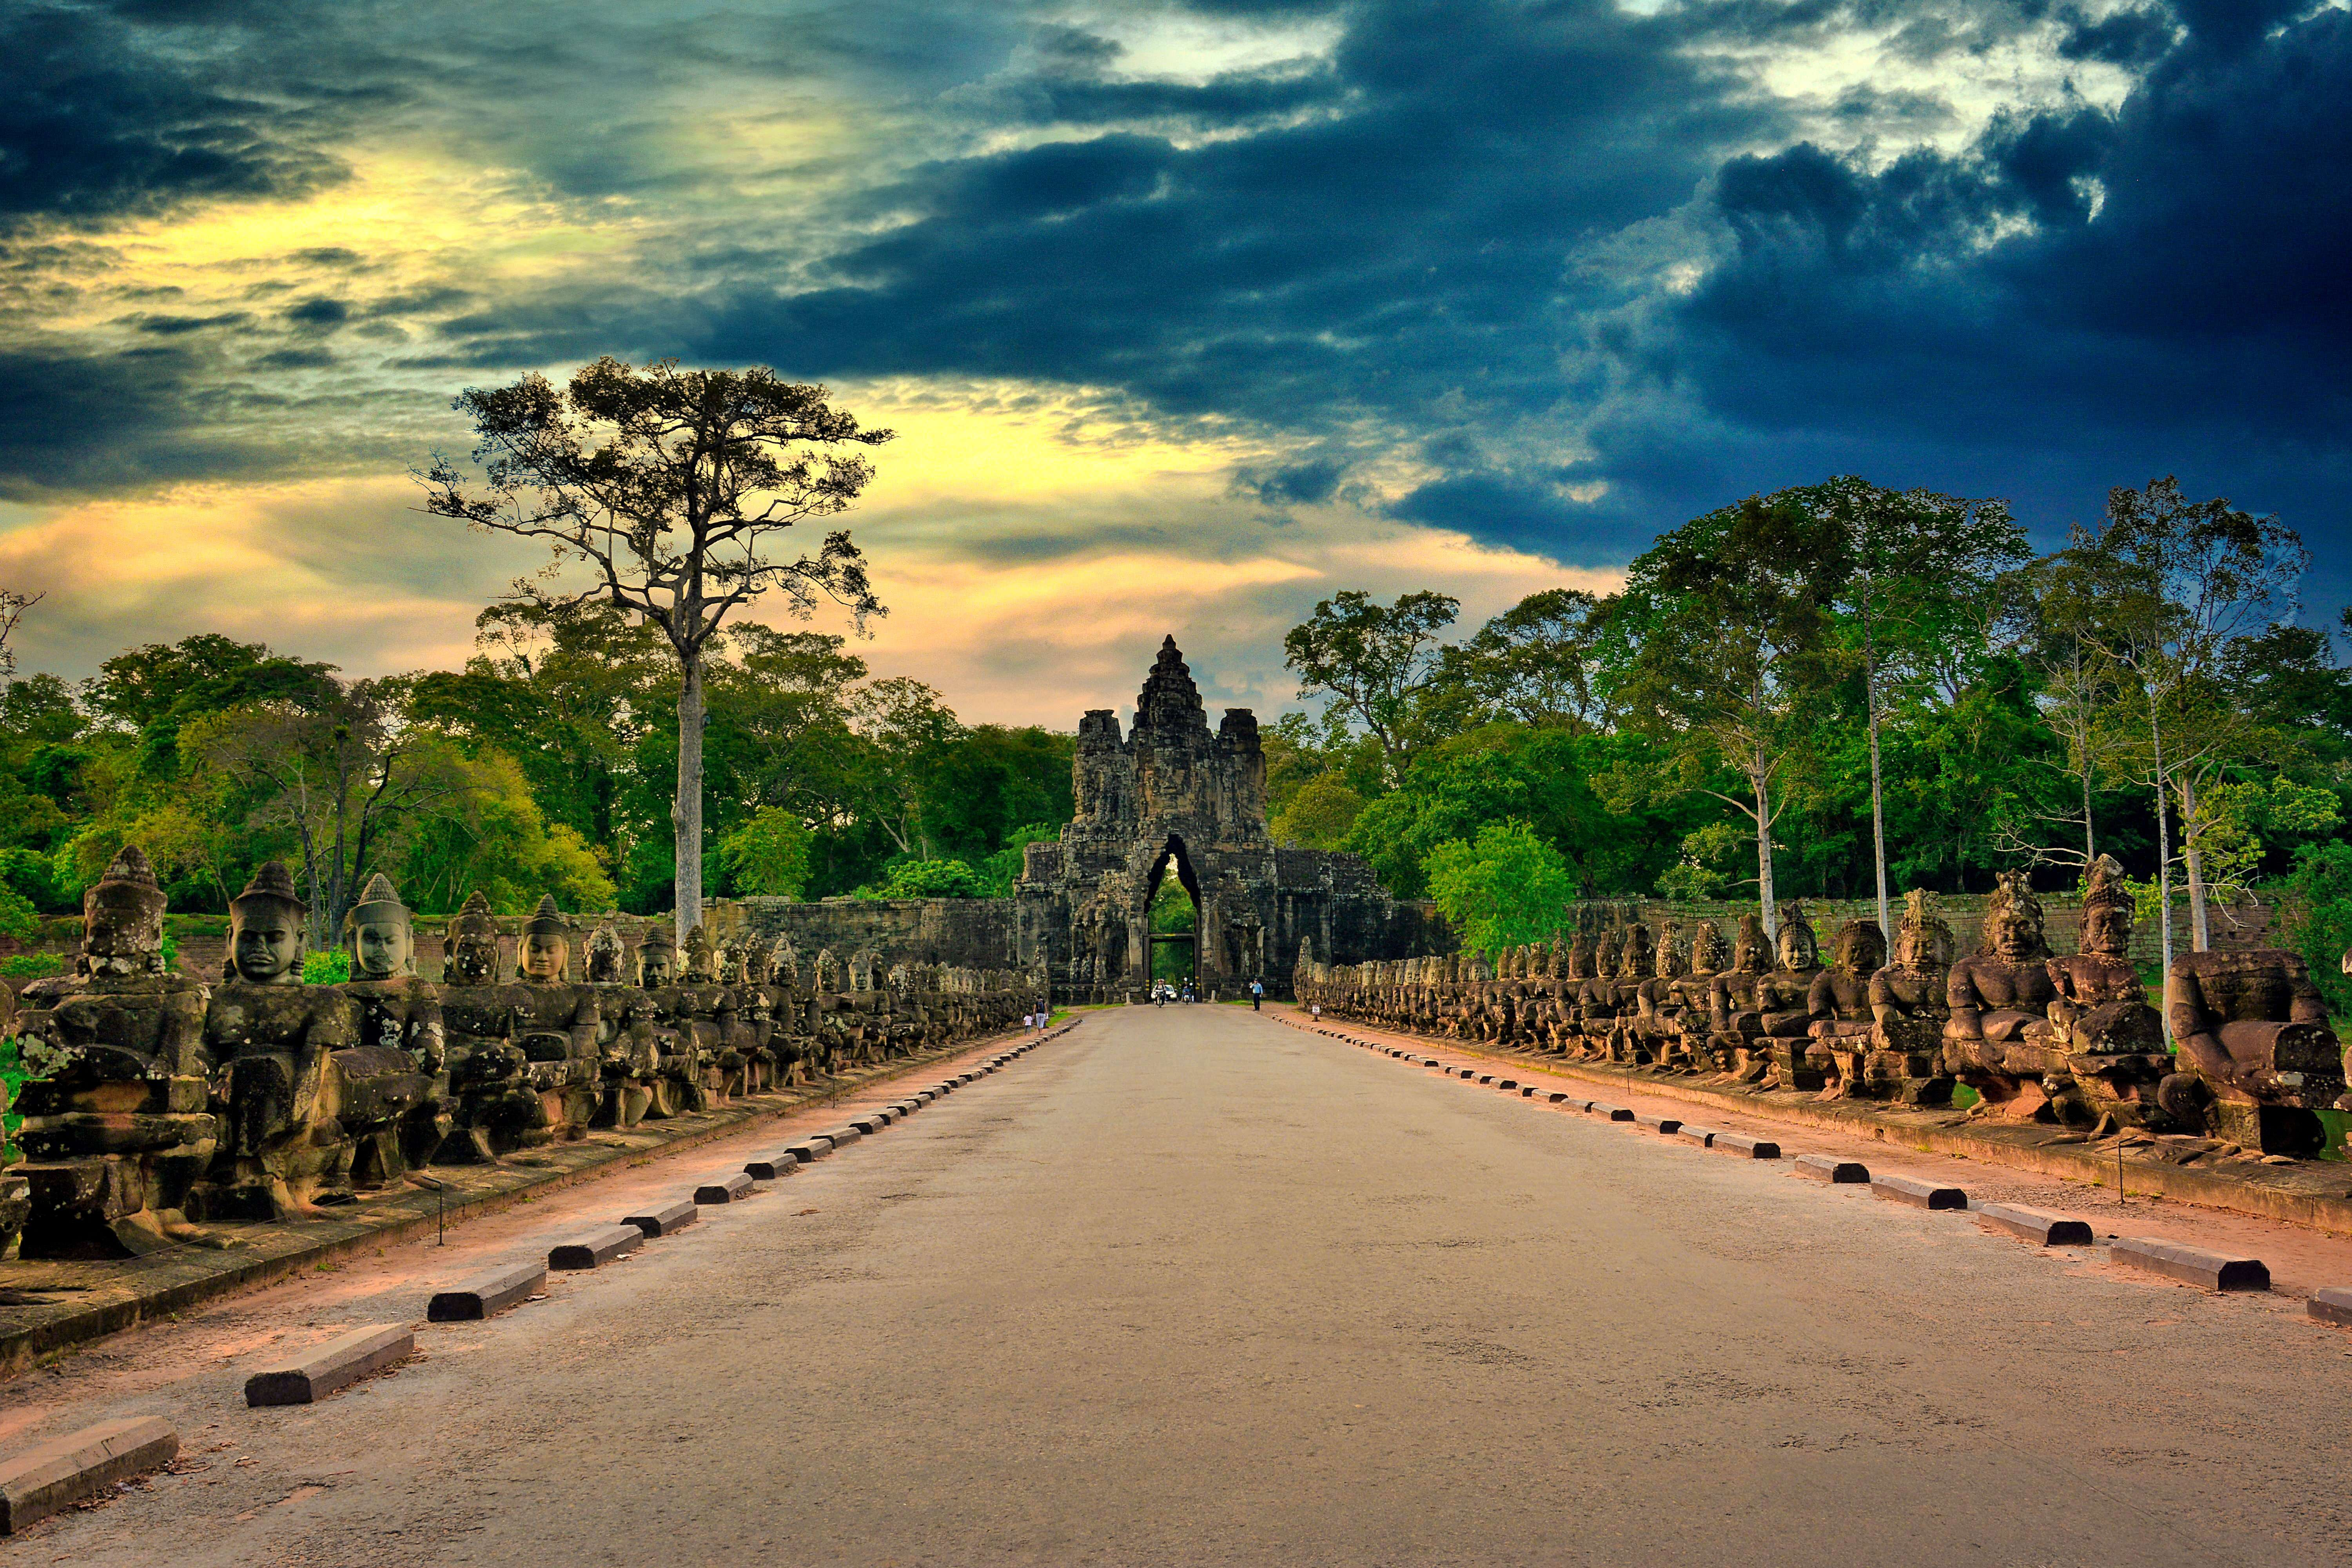 Charms of the Mekong October 31-November 7, 2022